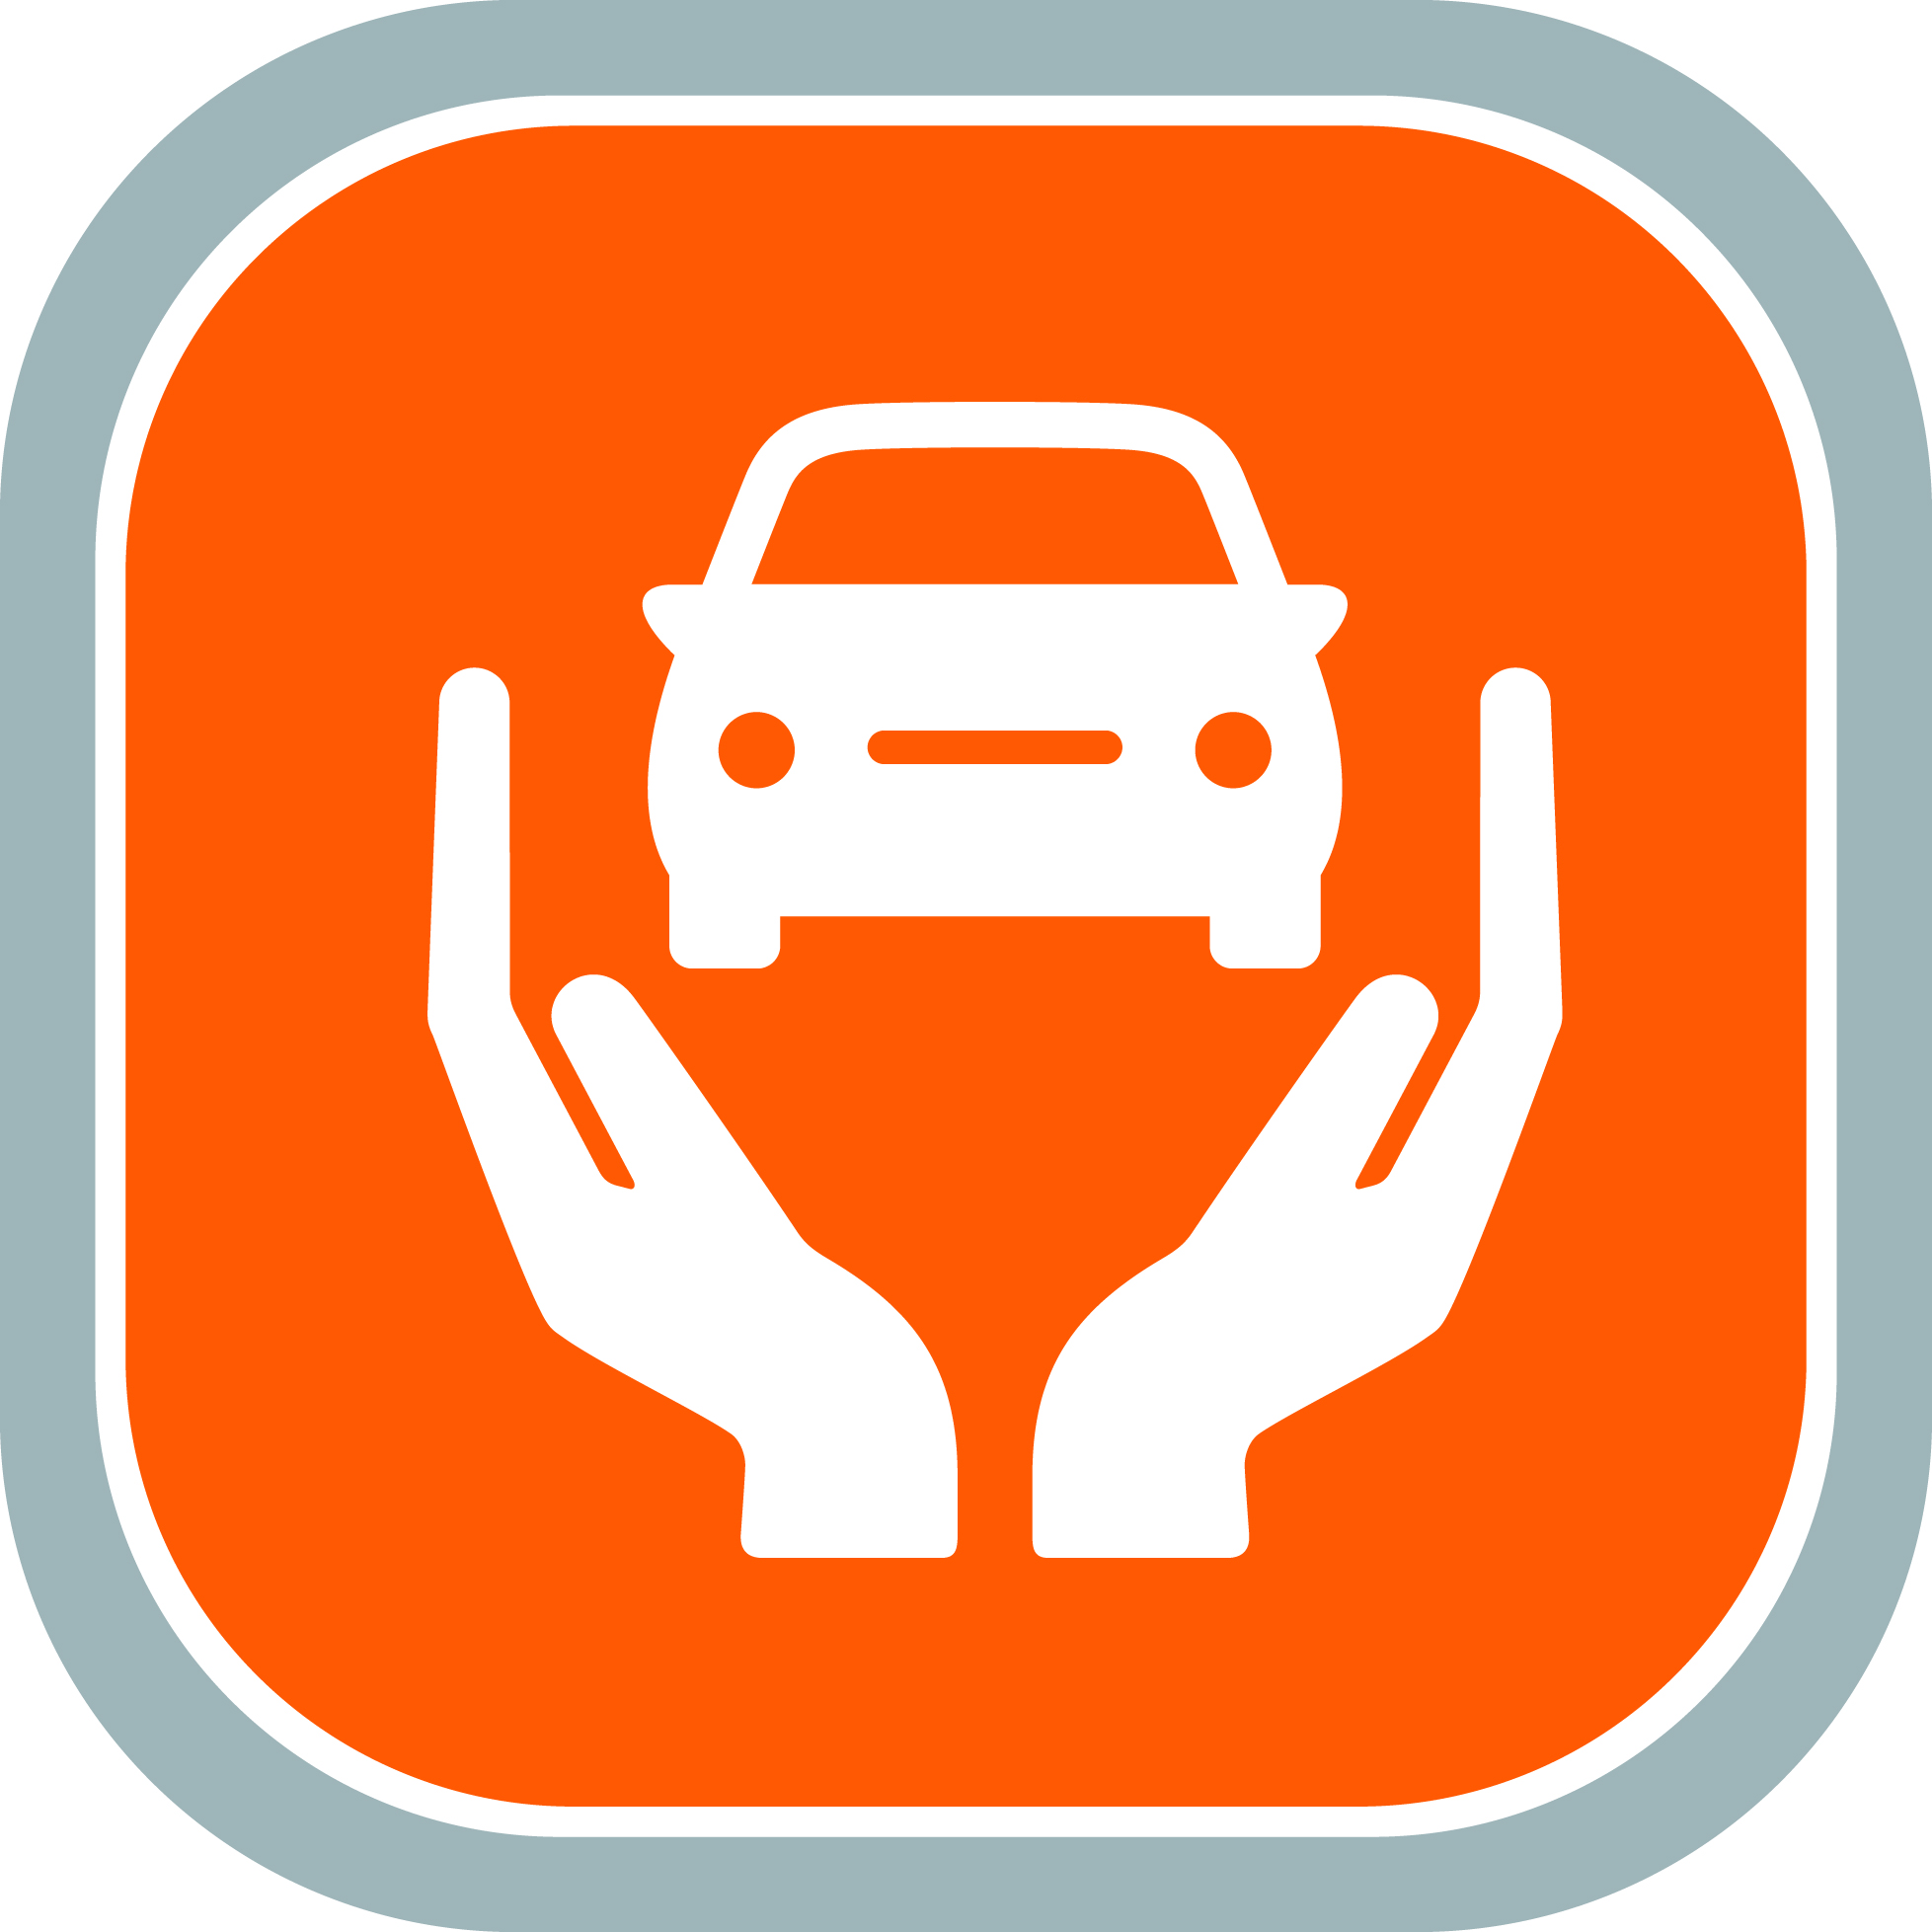 sx07631_Icons_Insurances_simp